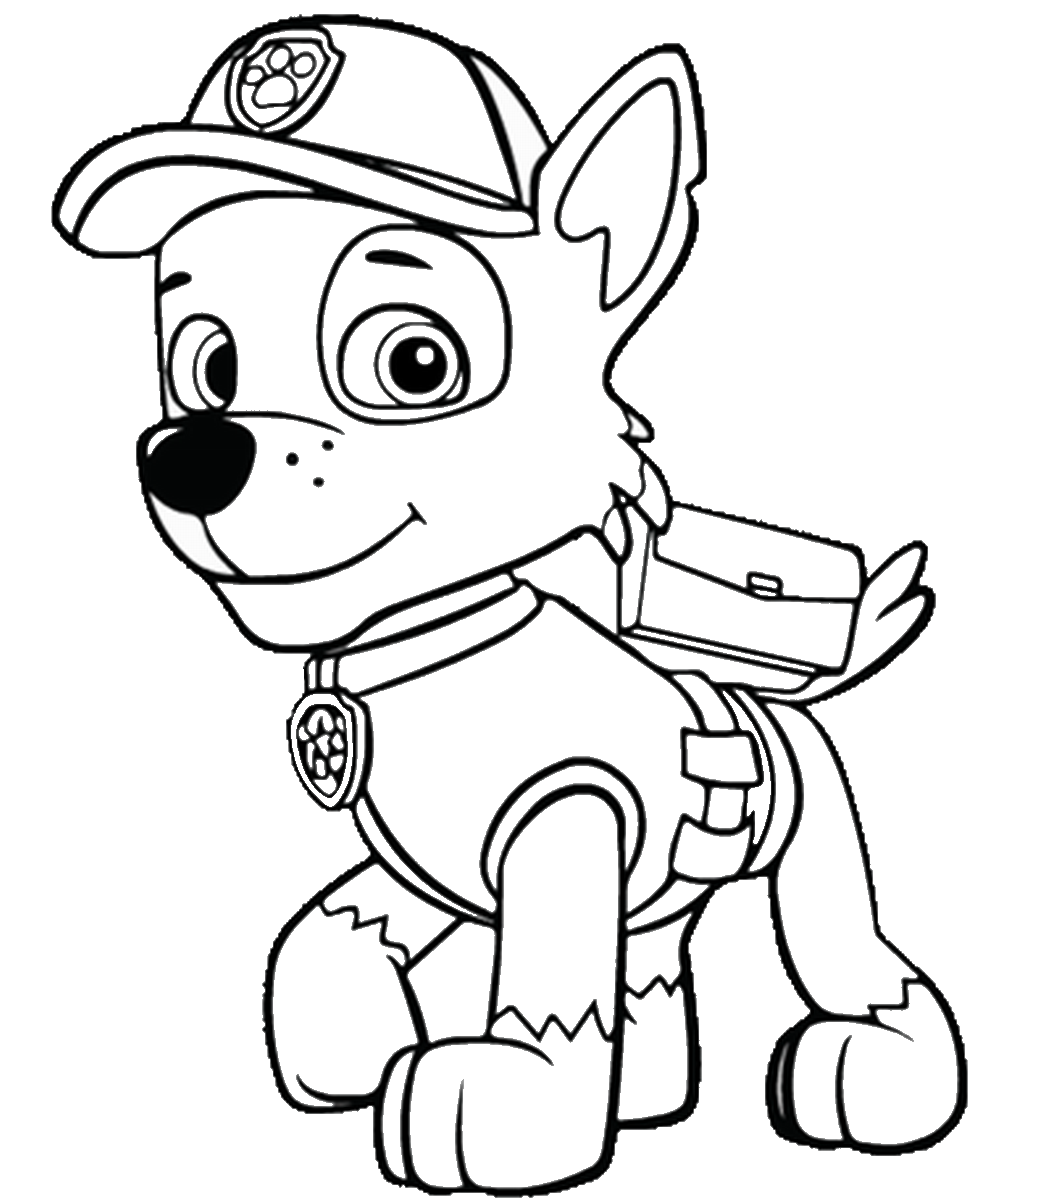 coloring pages of paw patrol chase paw patrol coloring pages to download and print for free patrol pages paw coloring of